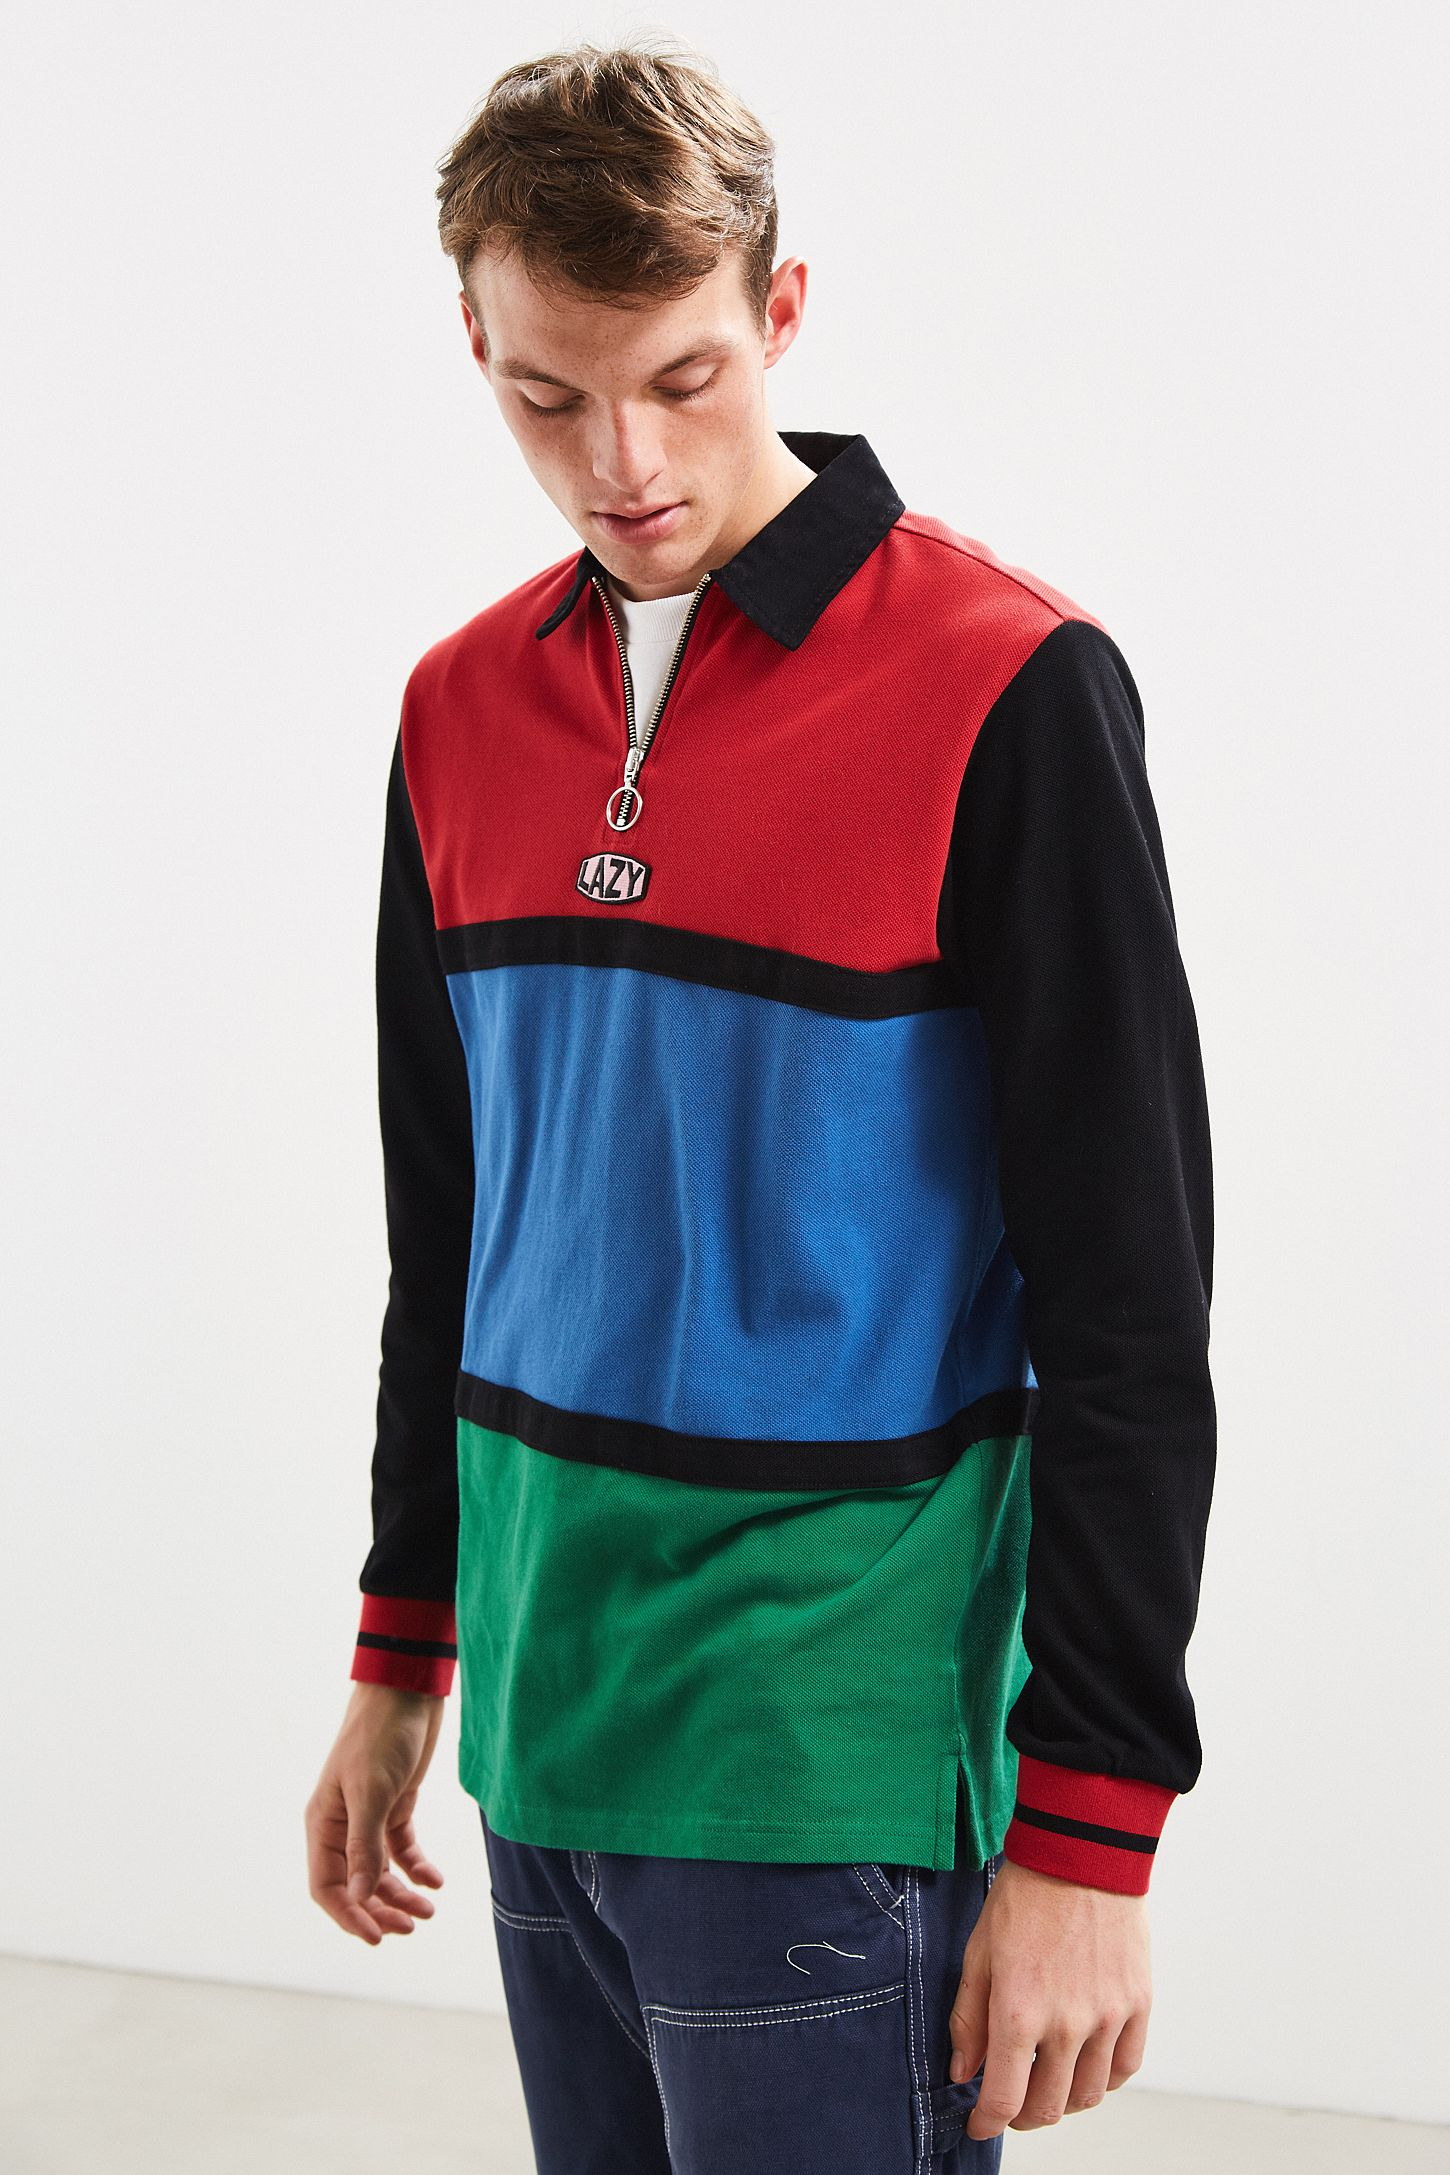 226138c6670 Lazy Oaf Colorblock Zip Rugby Shirt | Urban Outfitters